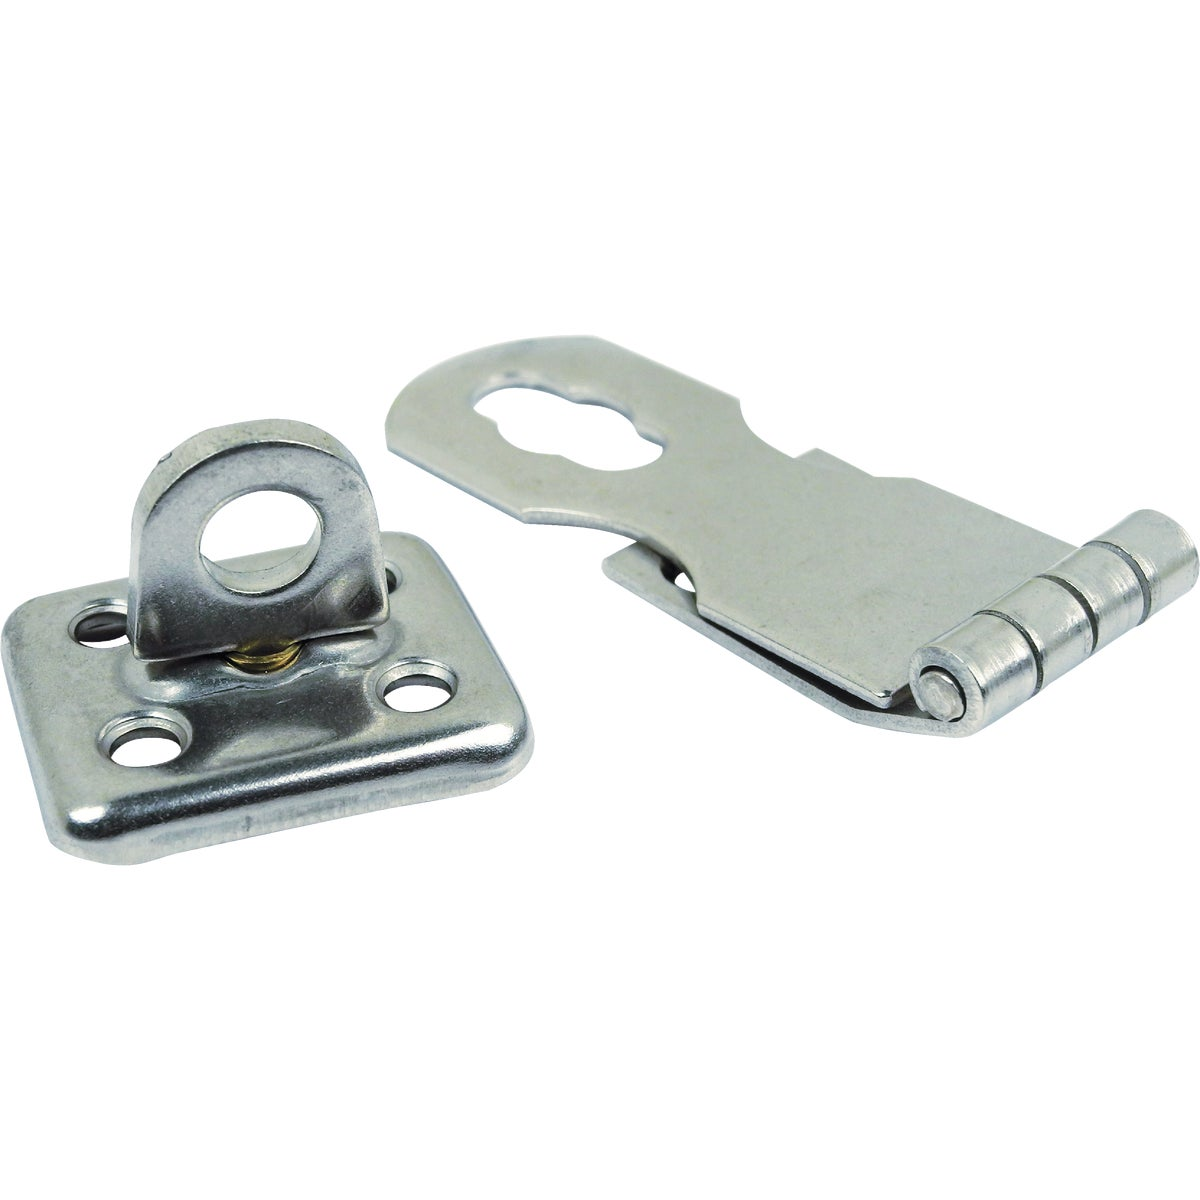 1X2-3/4 SWIVEL HASP